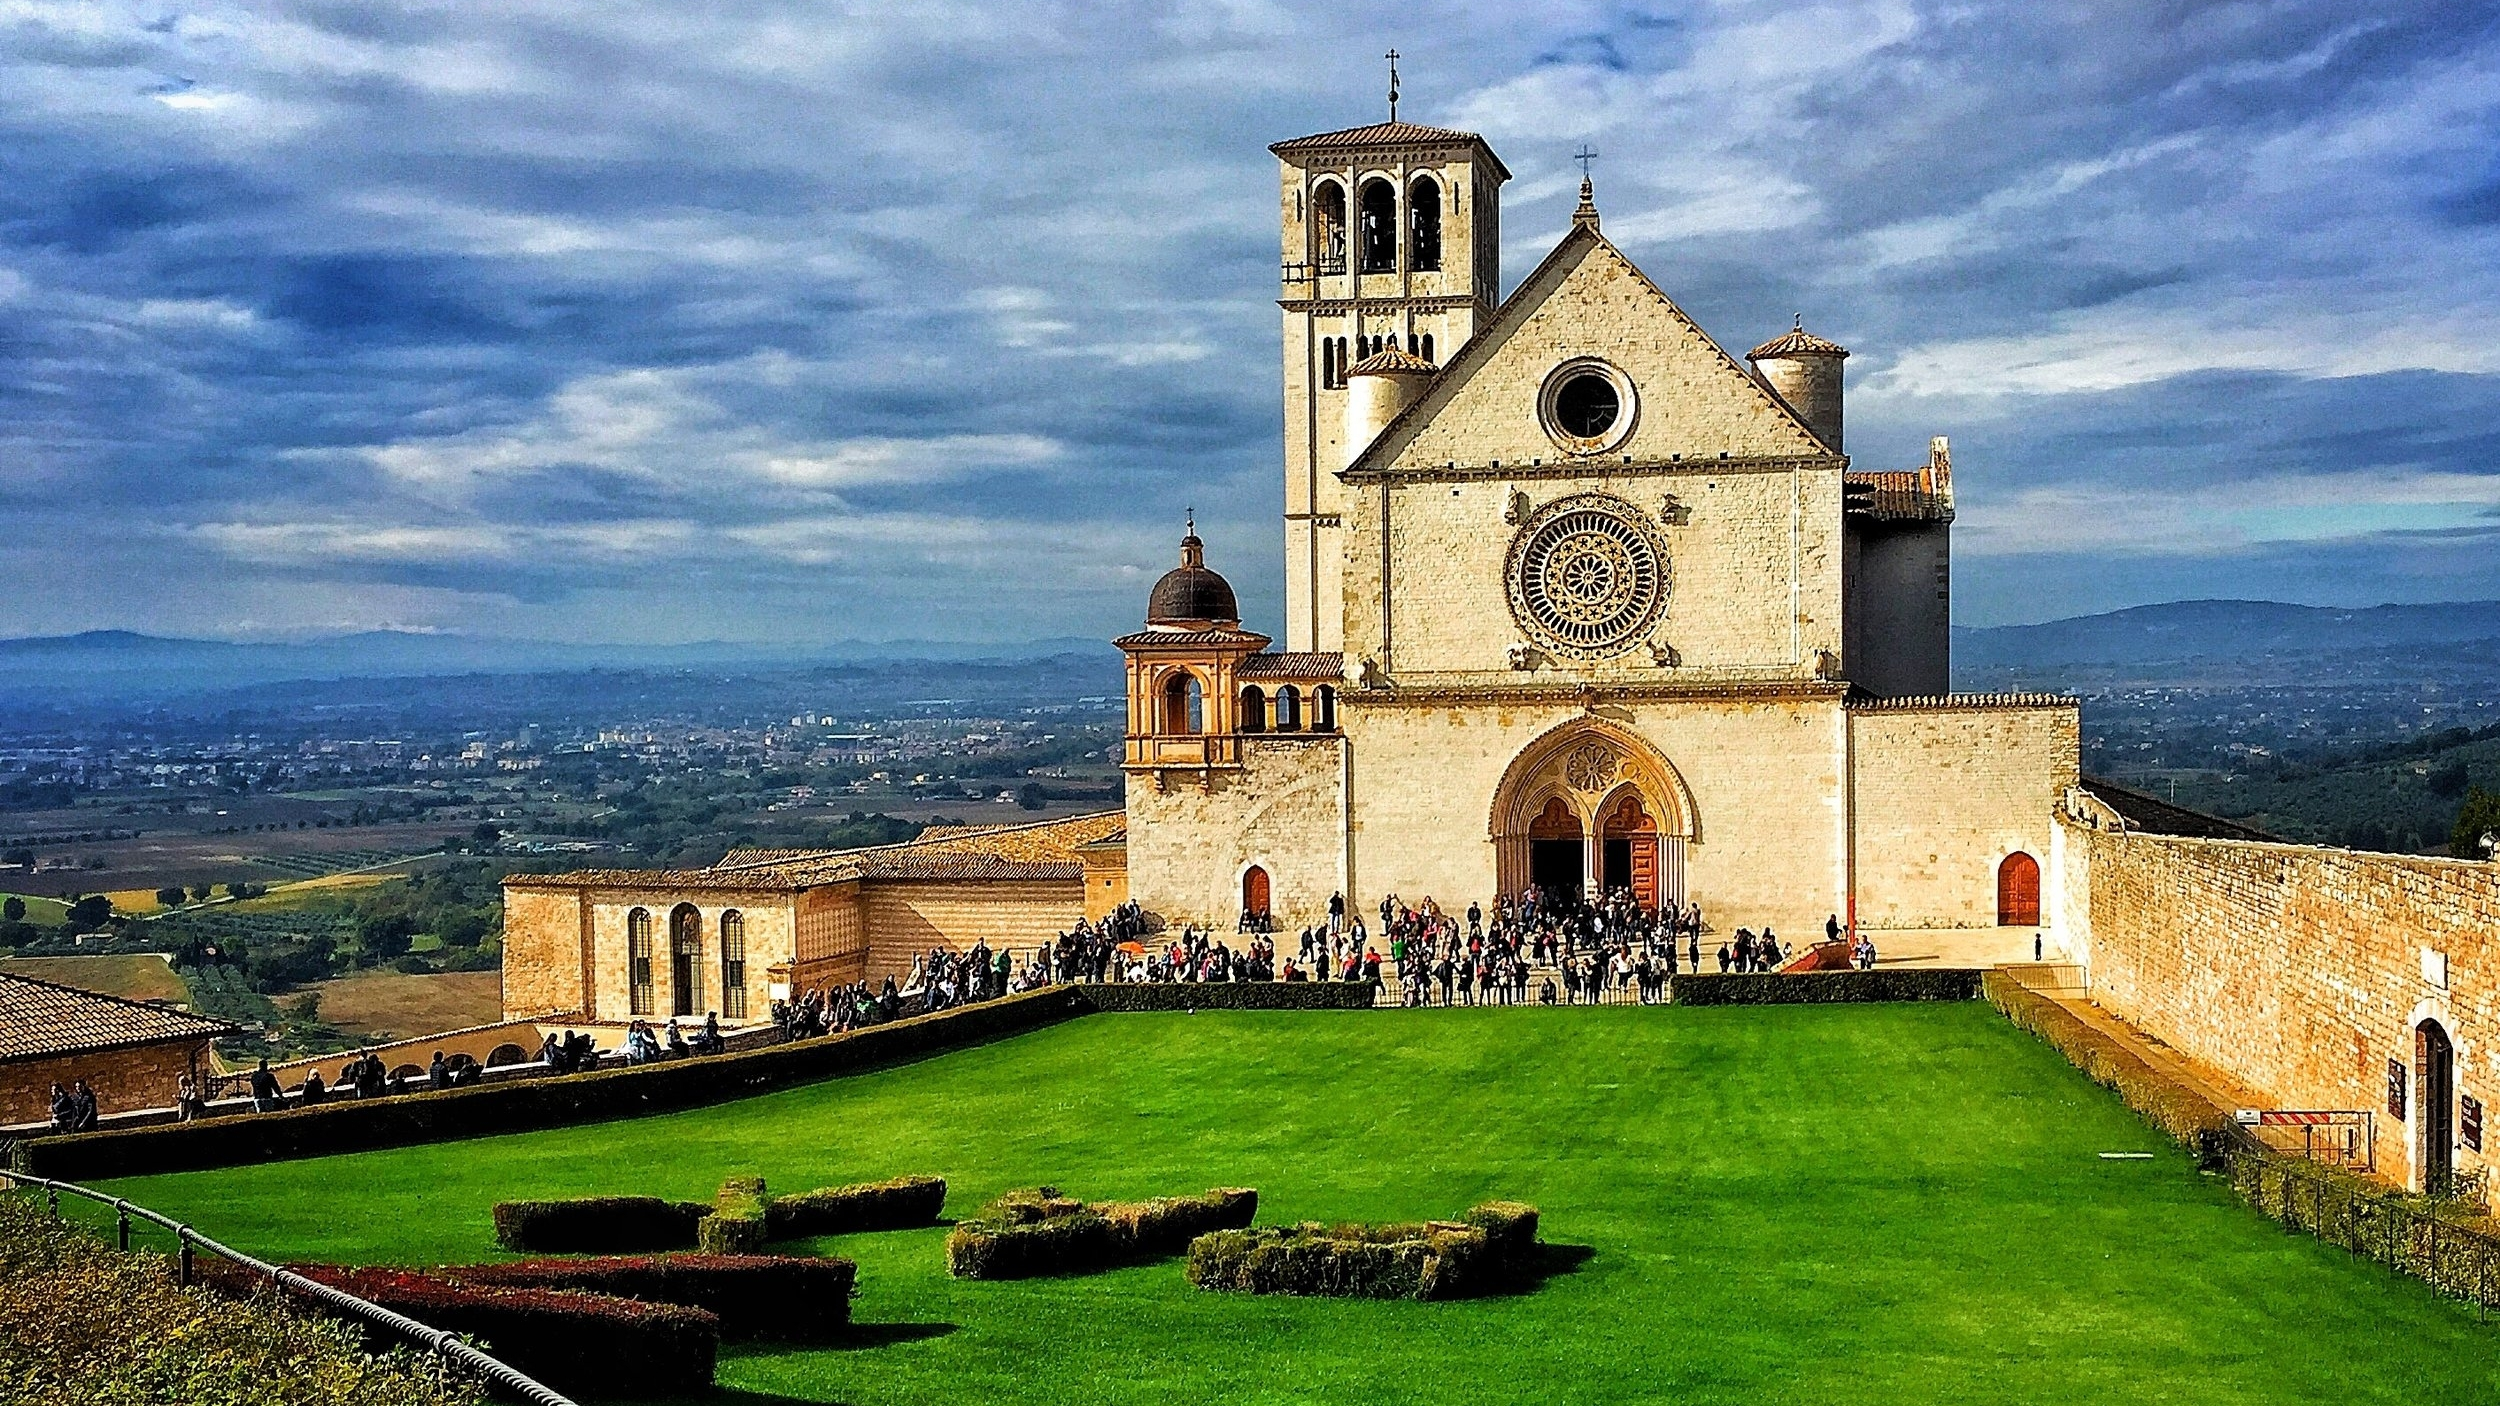 Wednesday of Holy Week - Discover the hometown of Sts. Francis and Clare with a day-trip to Assisi.